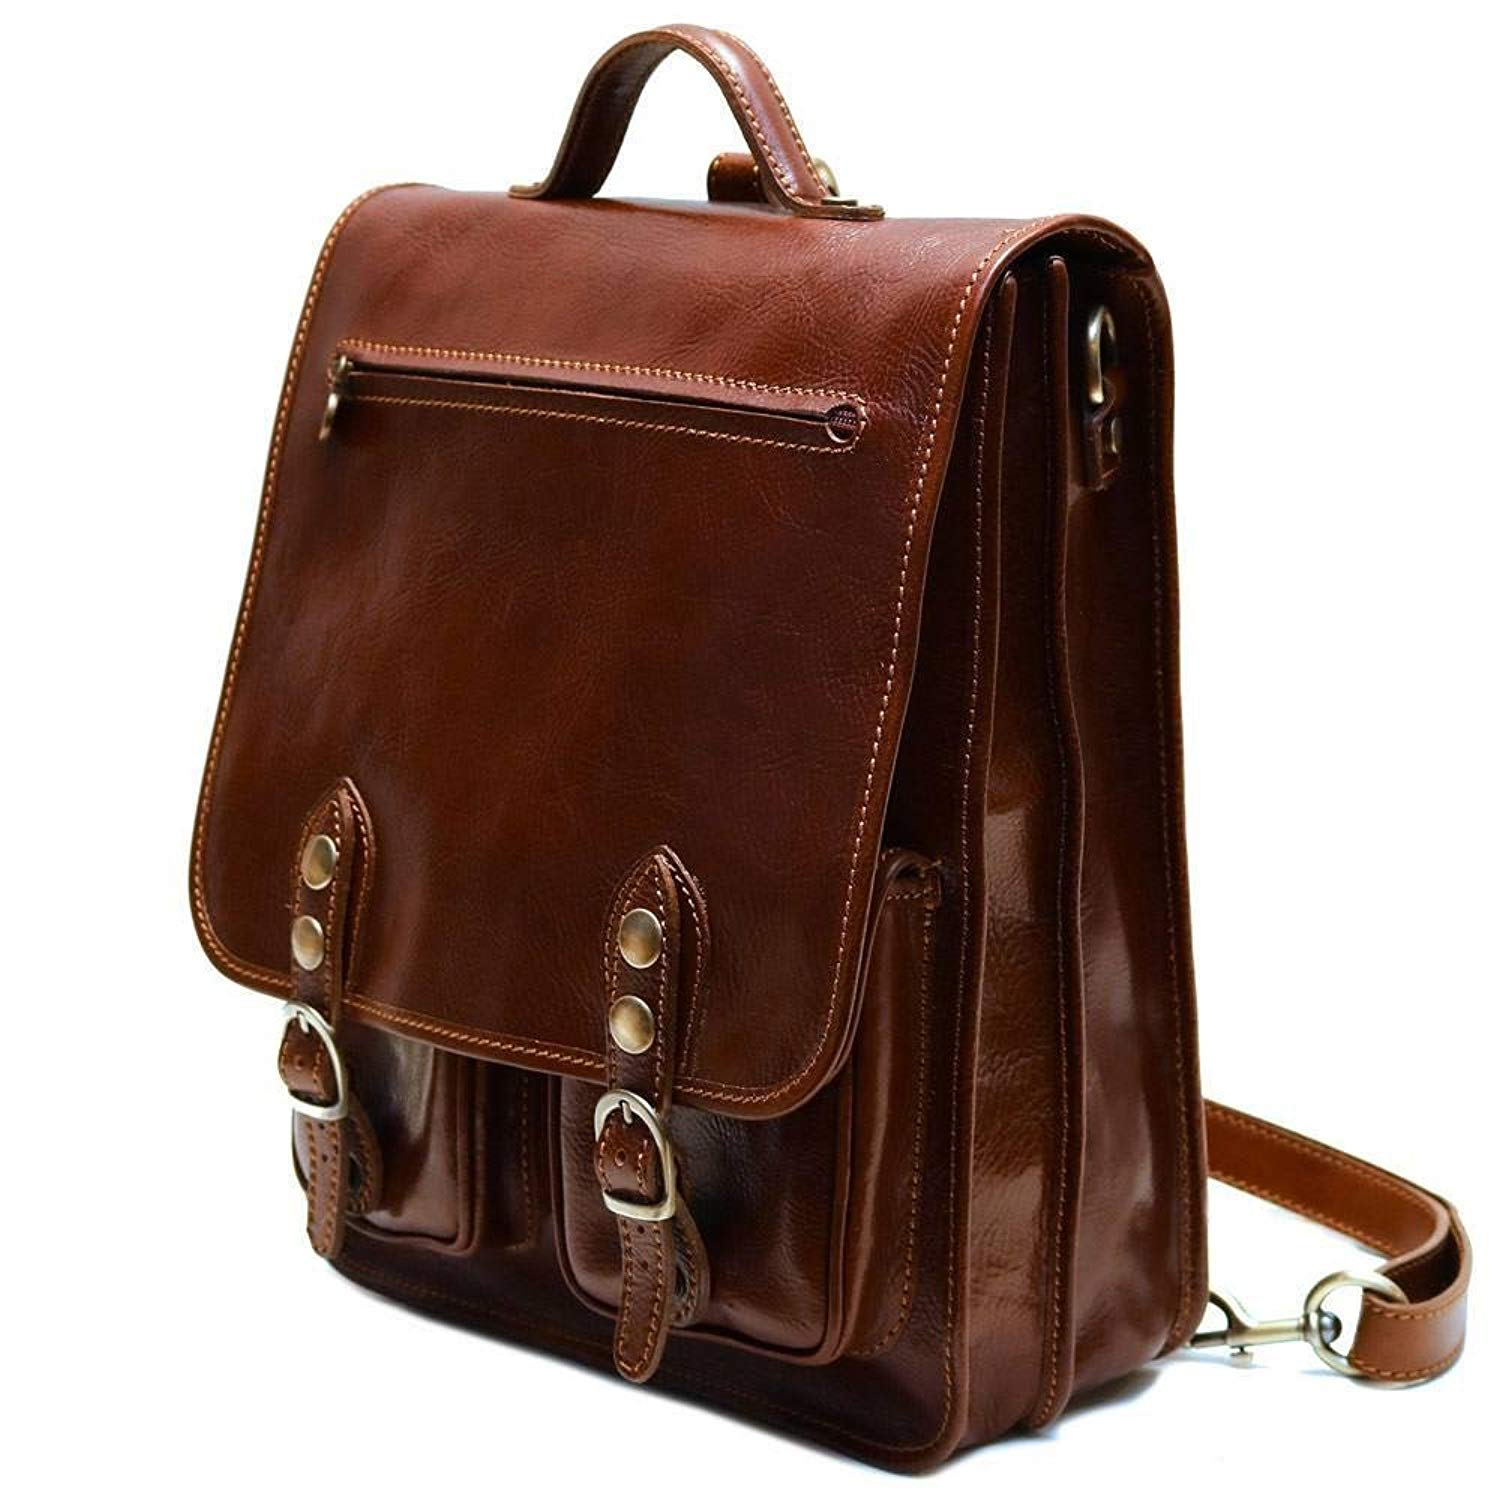 ... Shoulder Backpack  Get Quotations · Floto Poste BackpackCrossbody in  Brown Full Grain Calfskin Leather new arrival 8c789 692ad f5c4343209234